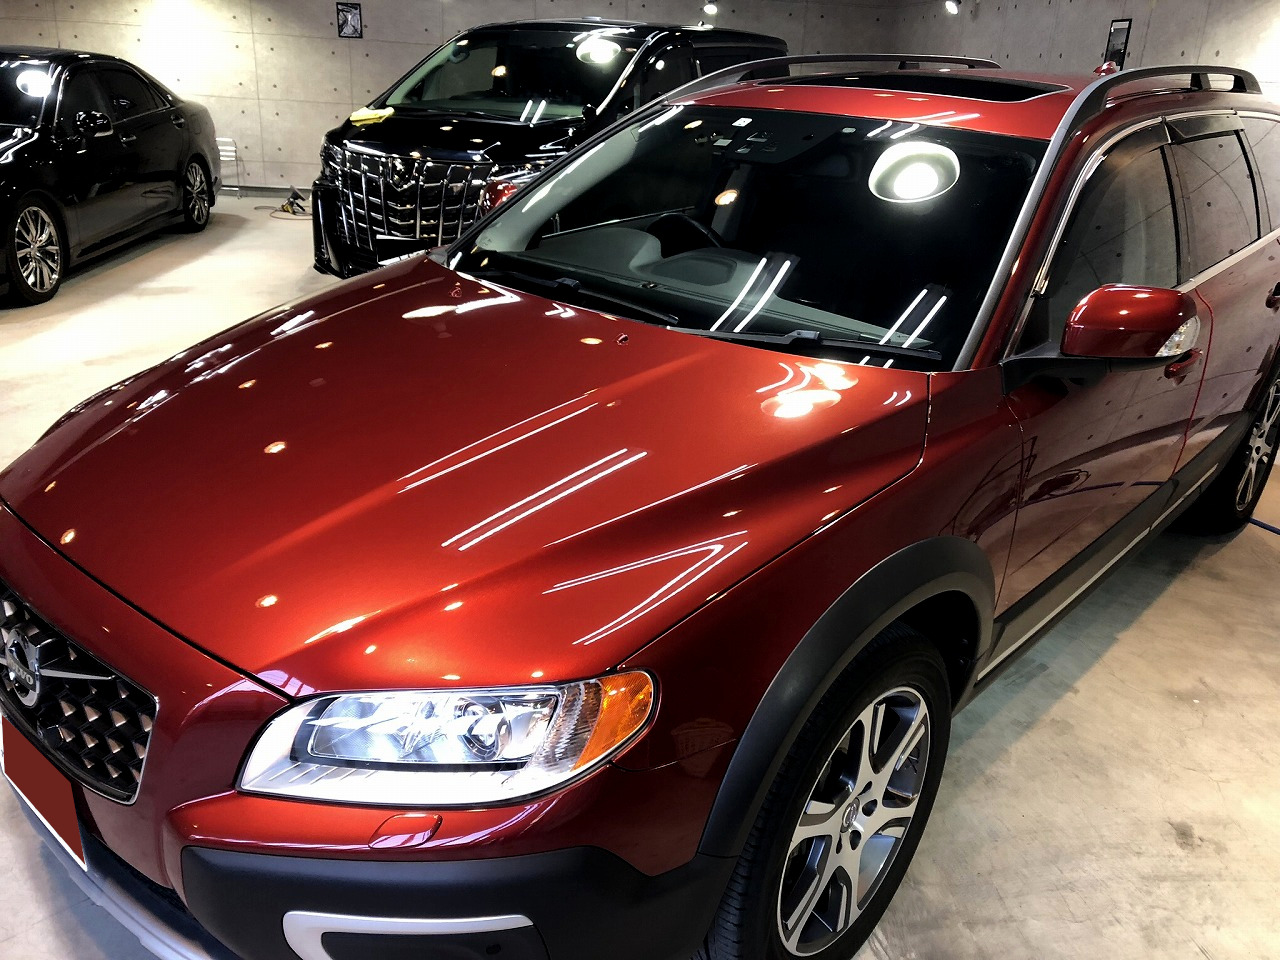 xc70_red_003